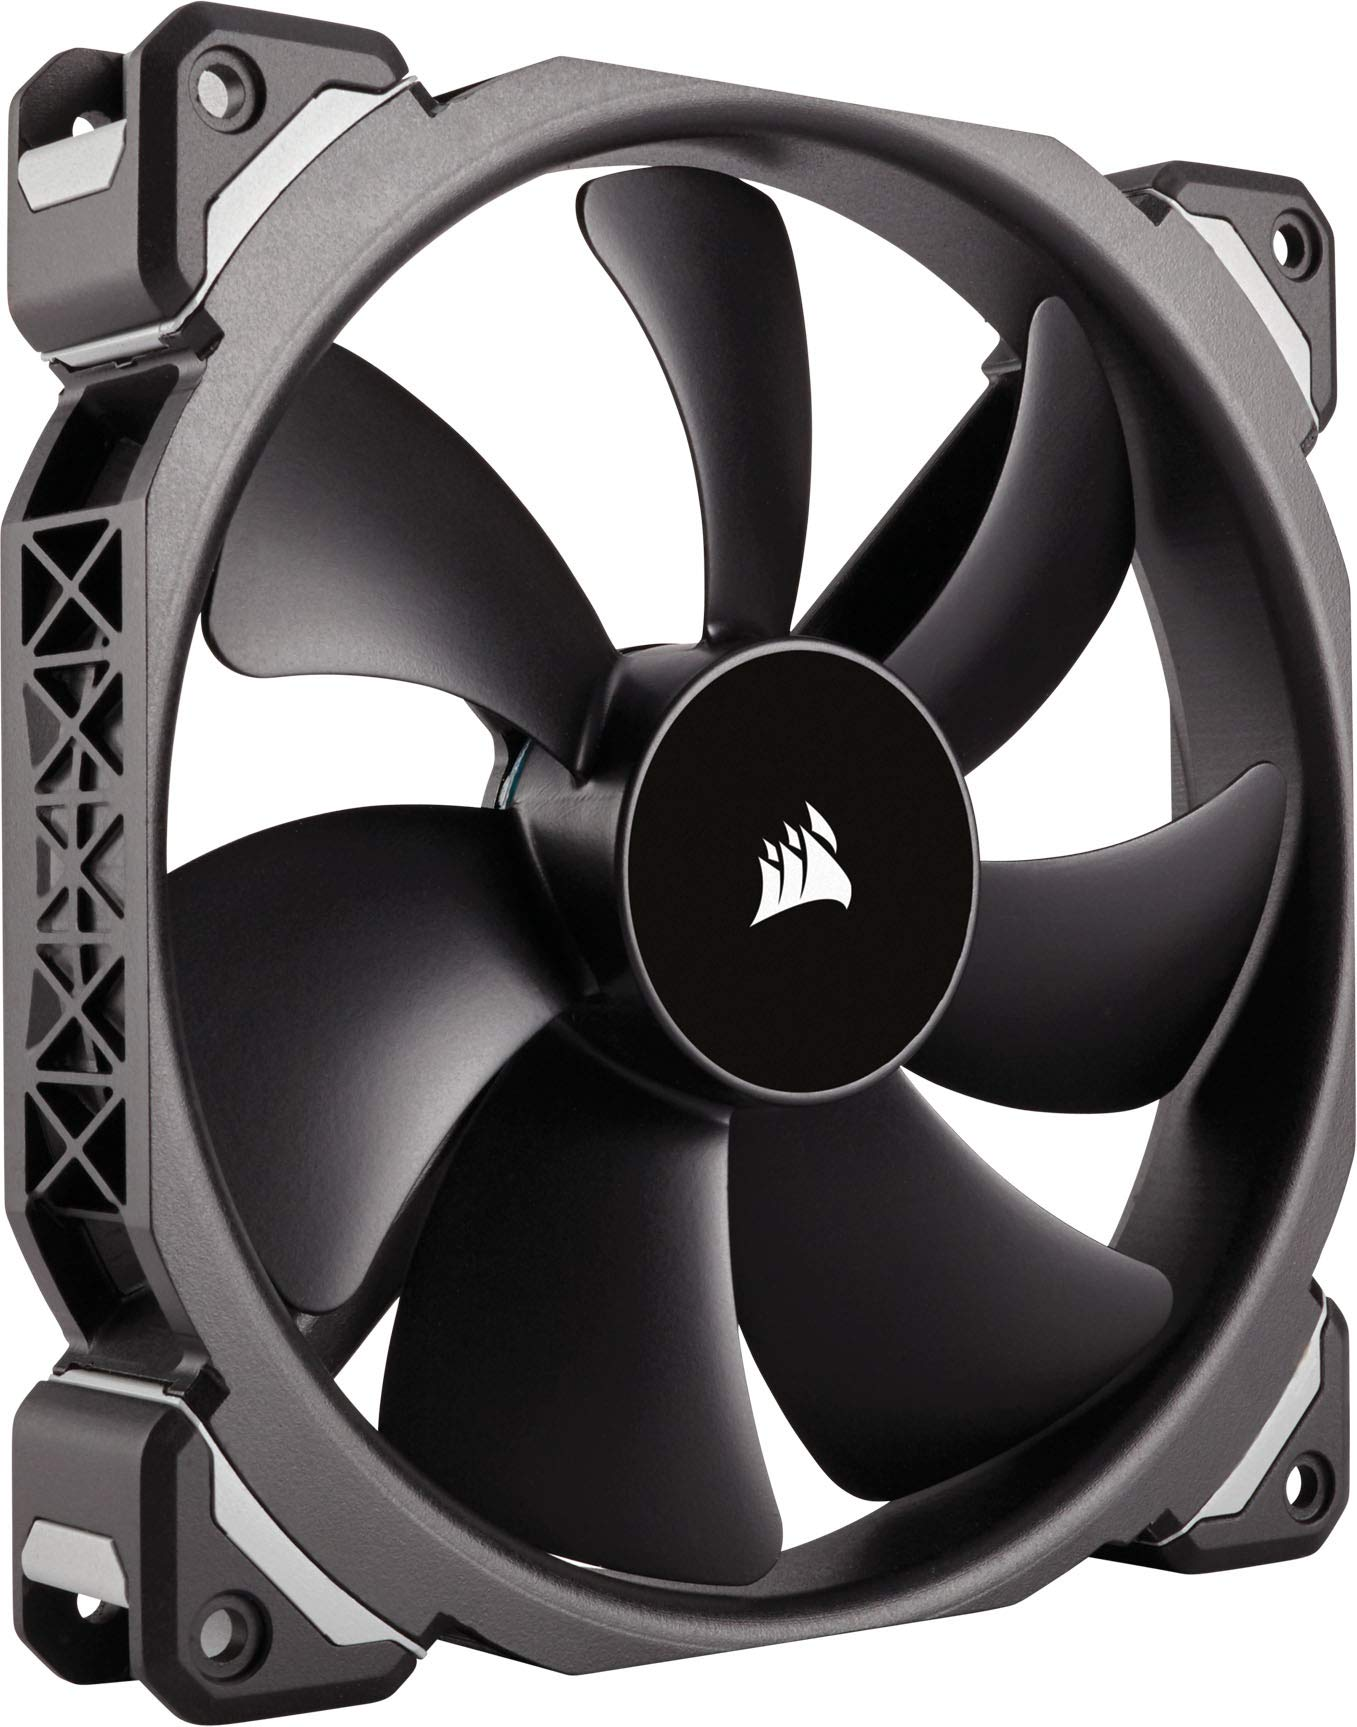 Fan Cooler Corsair ML140 Pro, 140mm Premium Magnetic Levitat